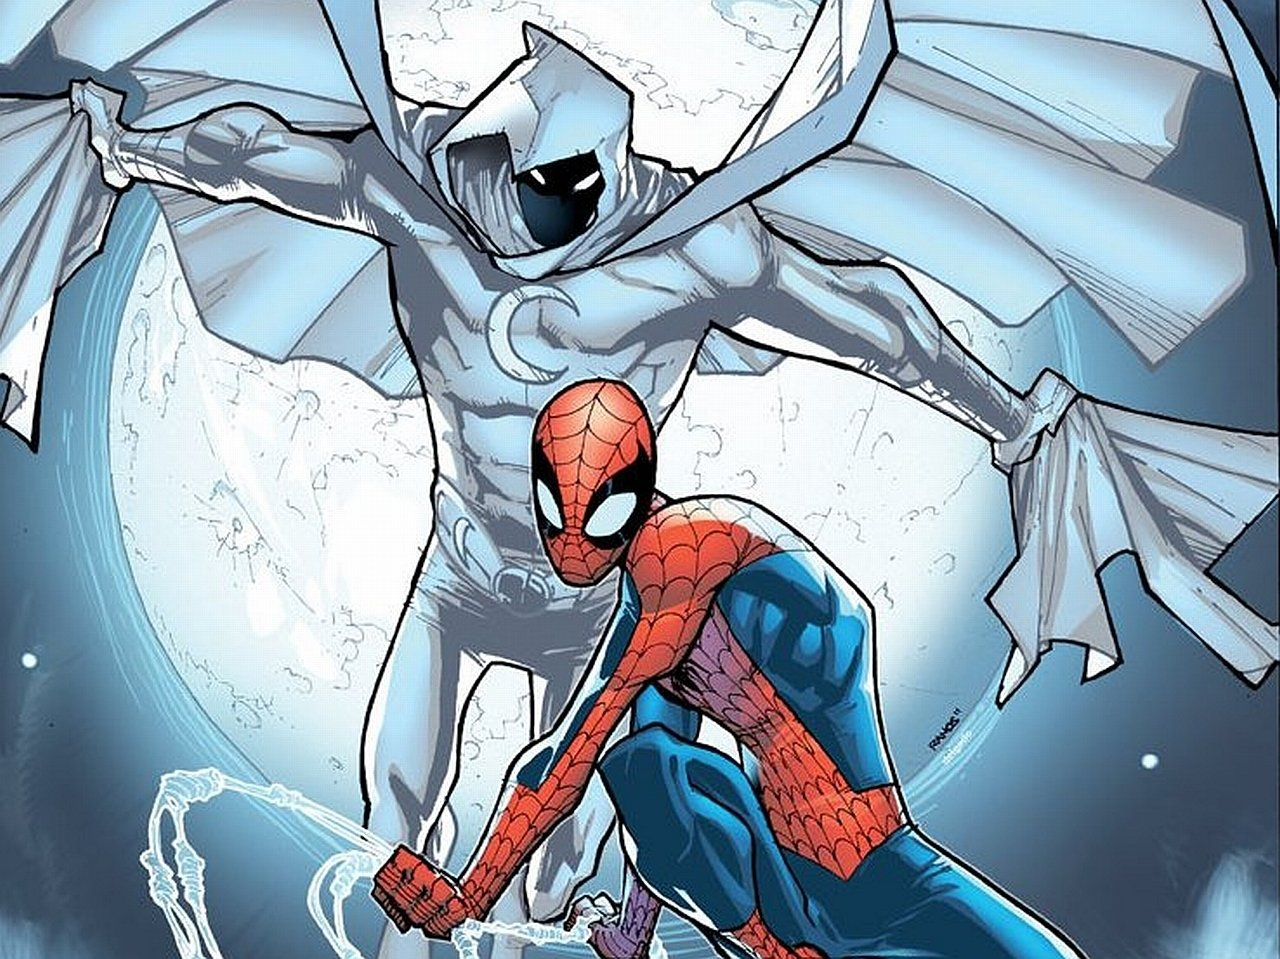 Moon Knight crossing paths with Spider-Man